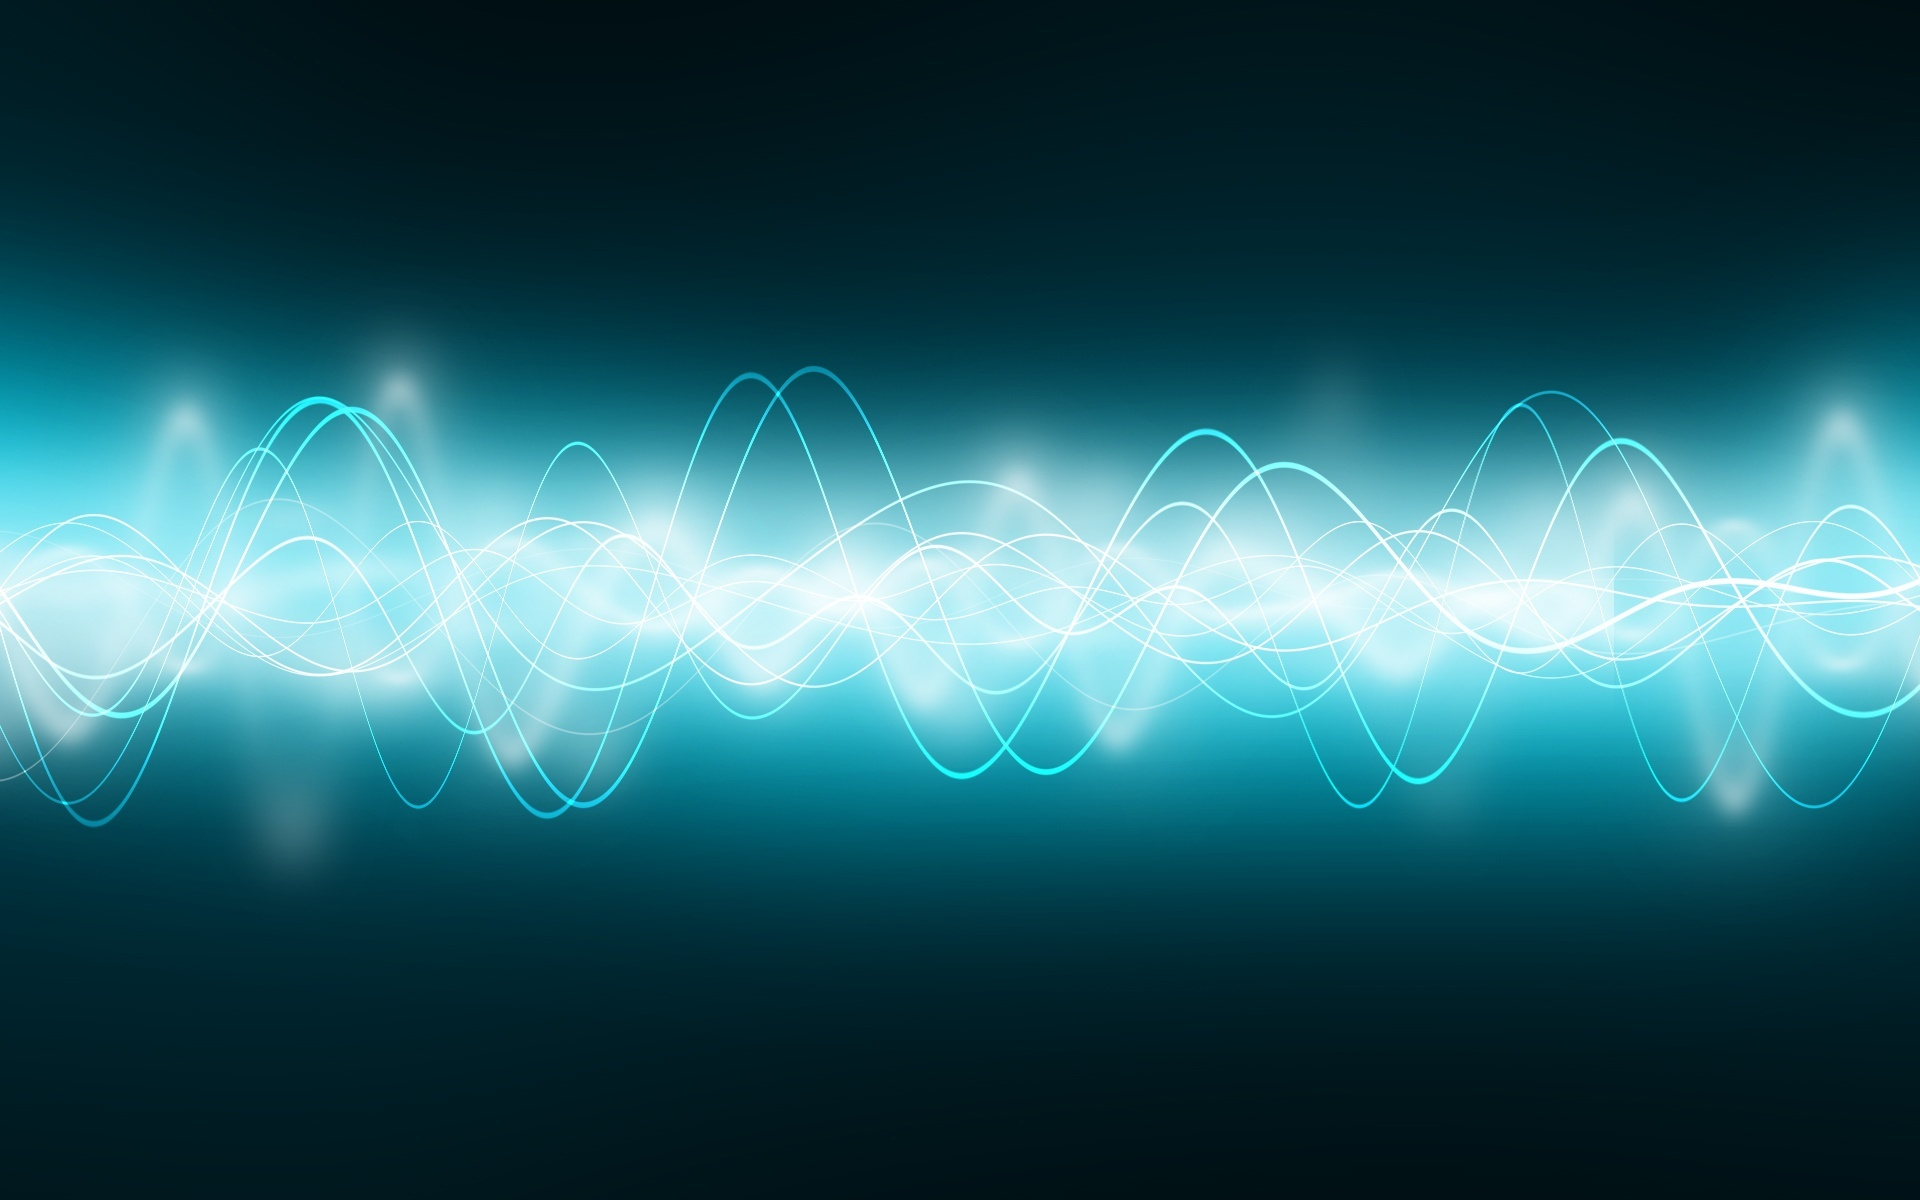 sound wave wallpaper 47336